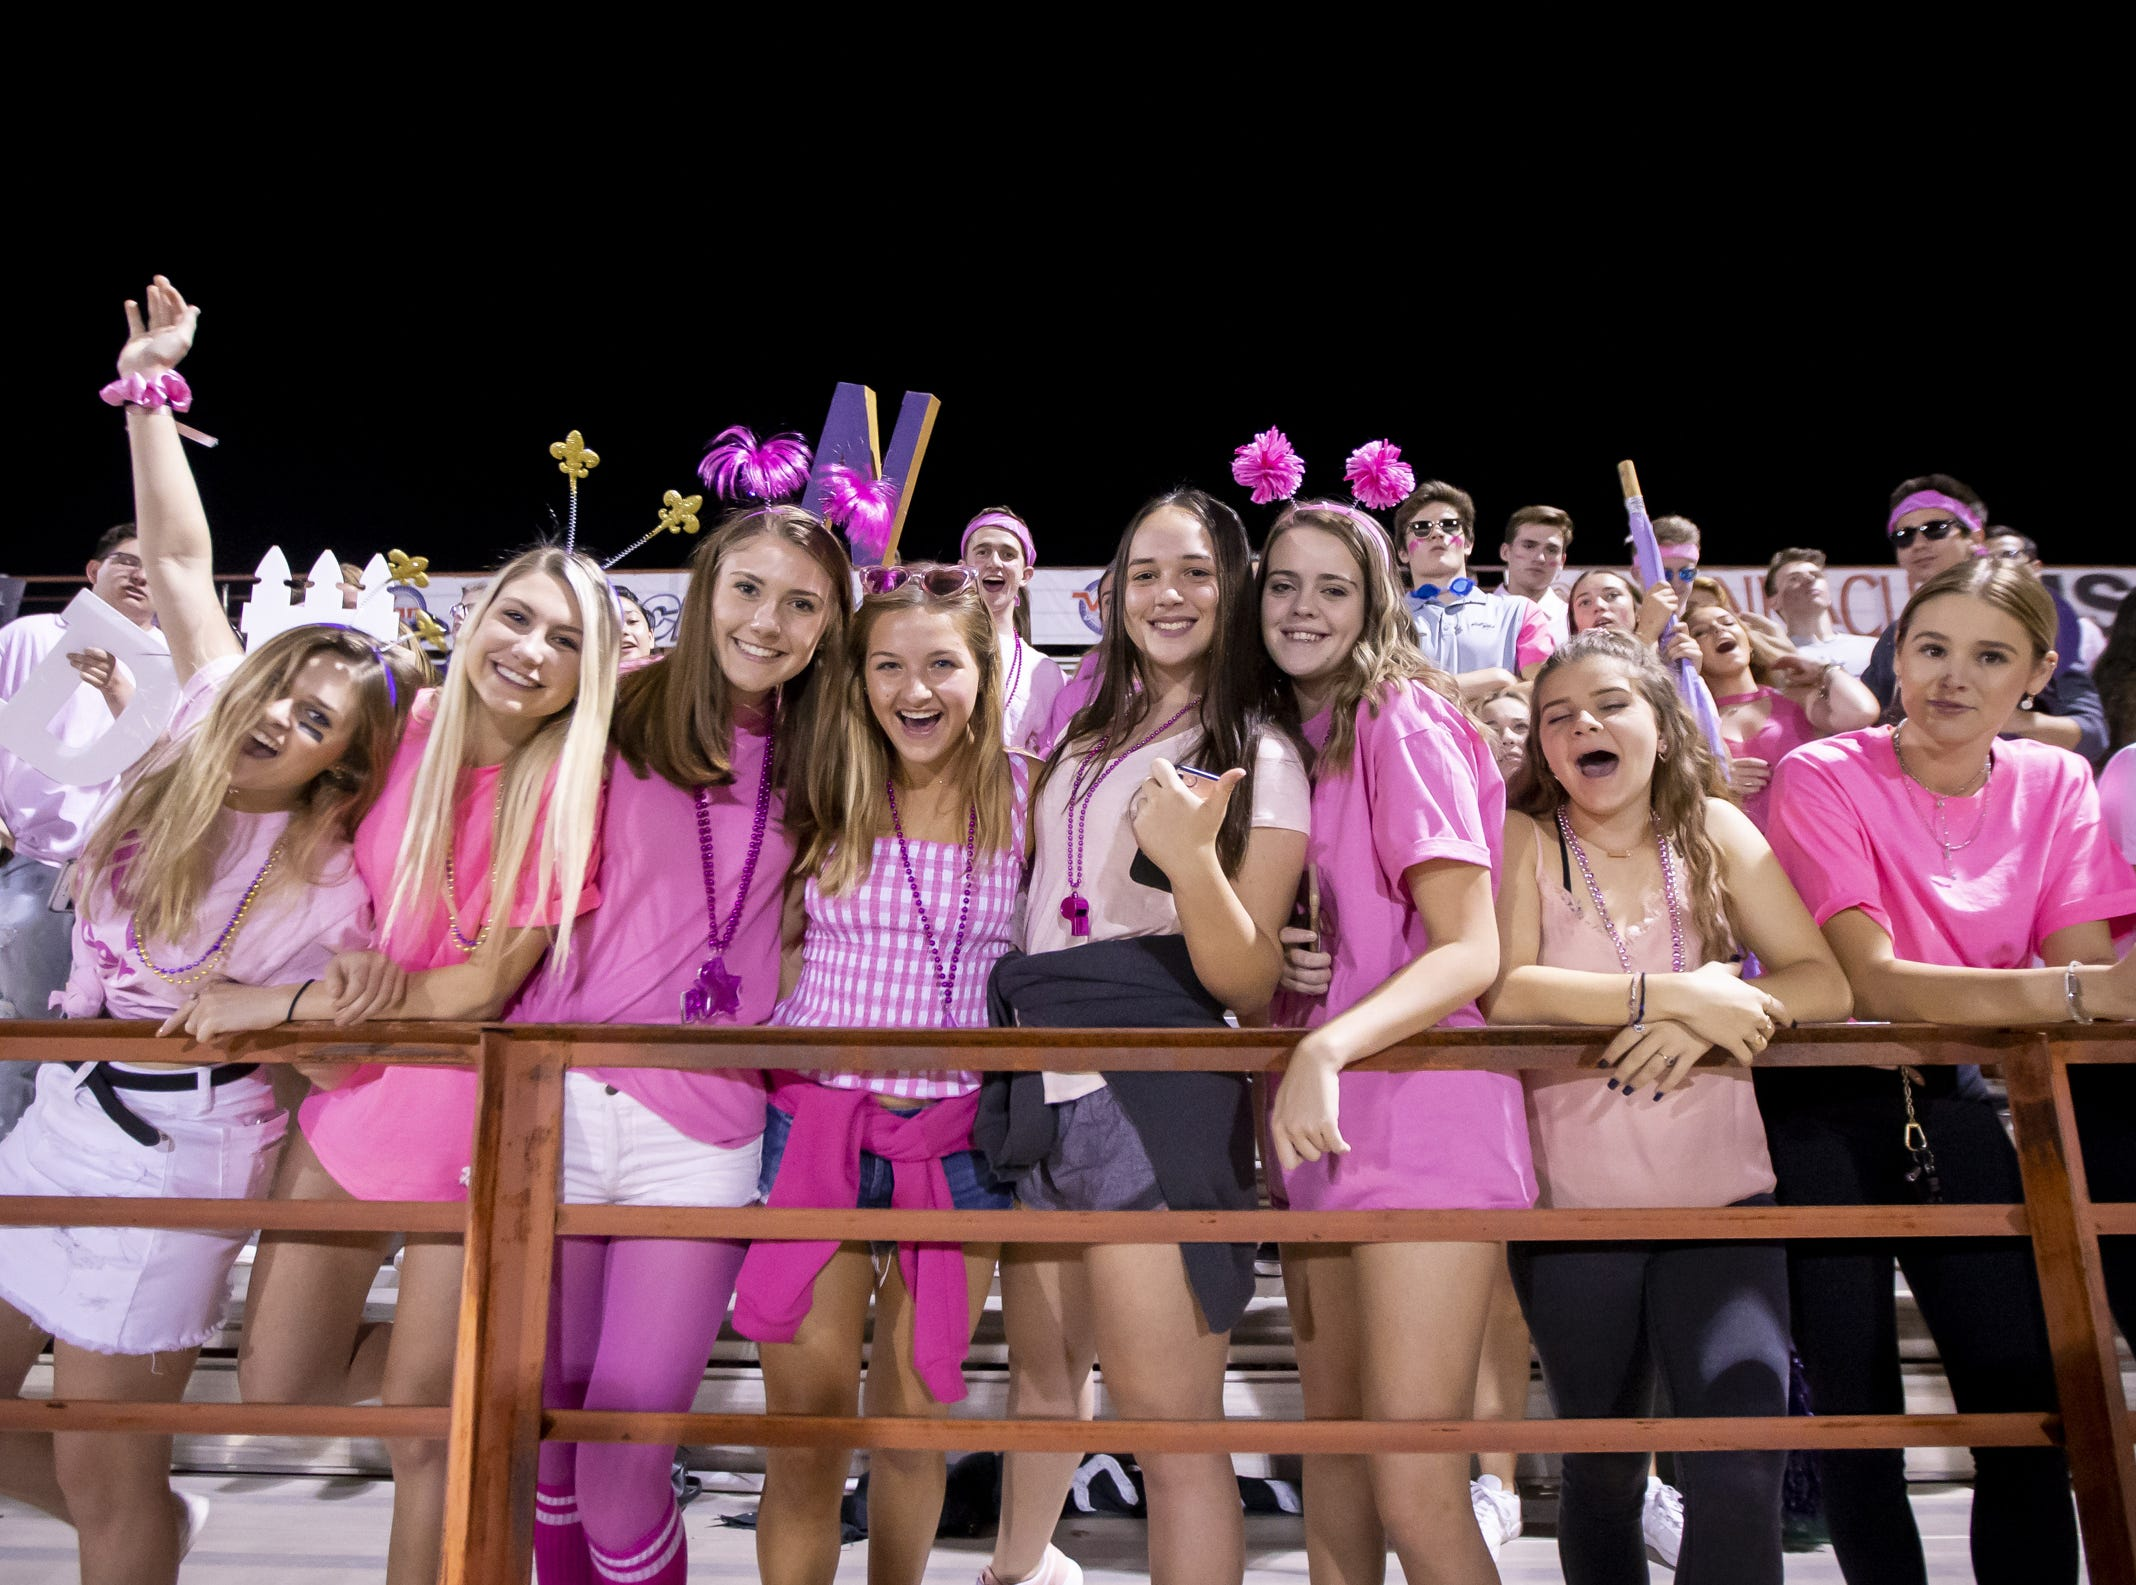 Notre Dame Prep fans during the game against the Horizon Huskies at Horizon High School on Friday, October 5, 2018 in Scottsdale, Arizona. #azhsfb